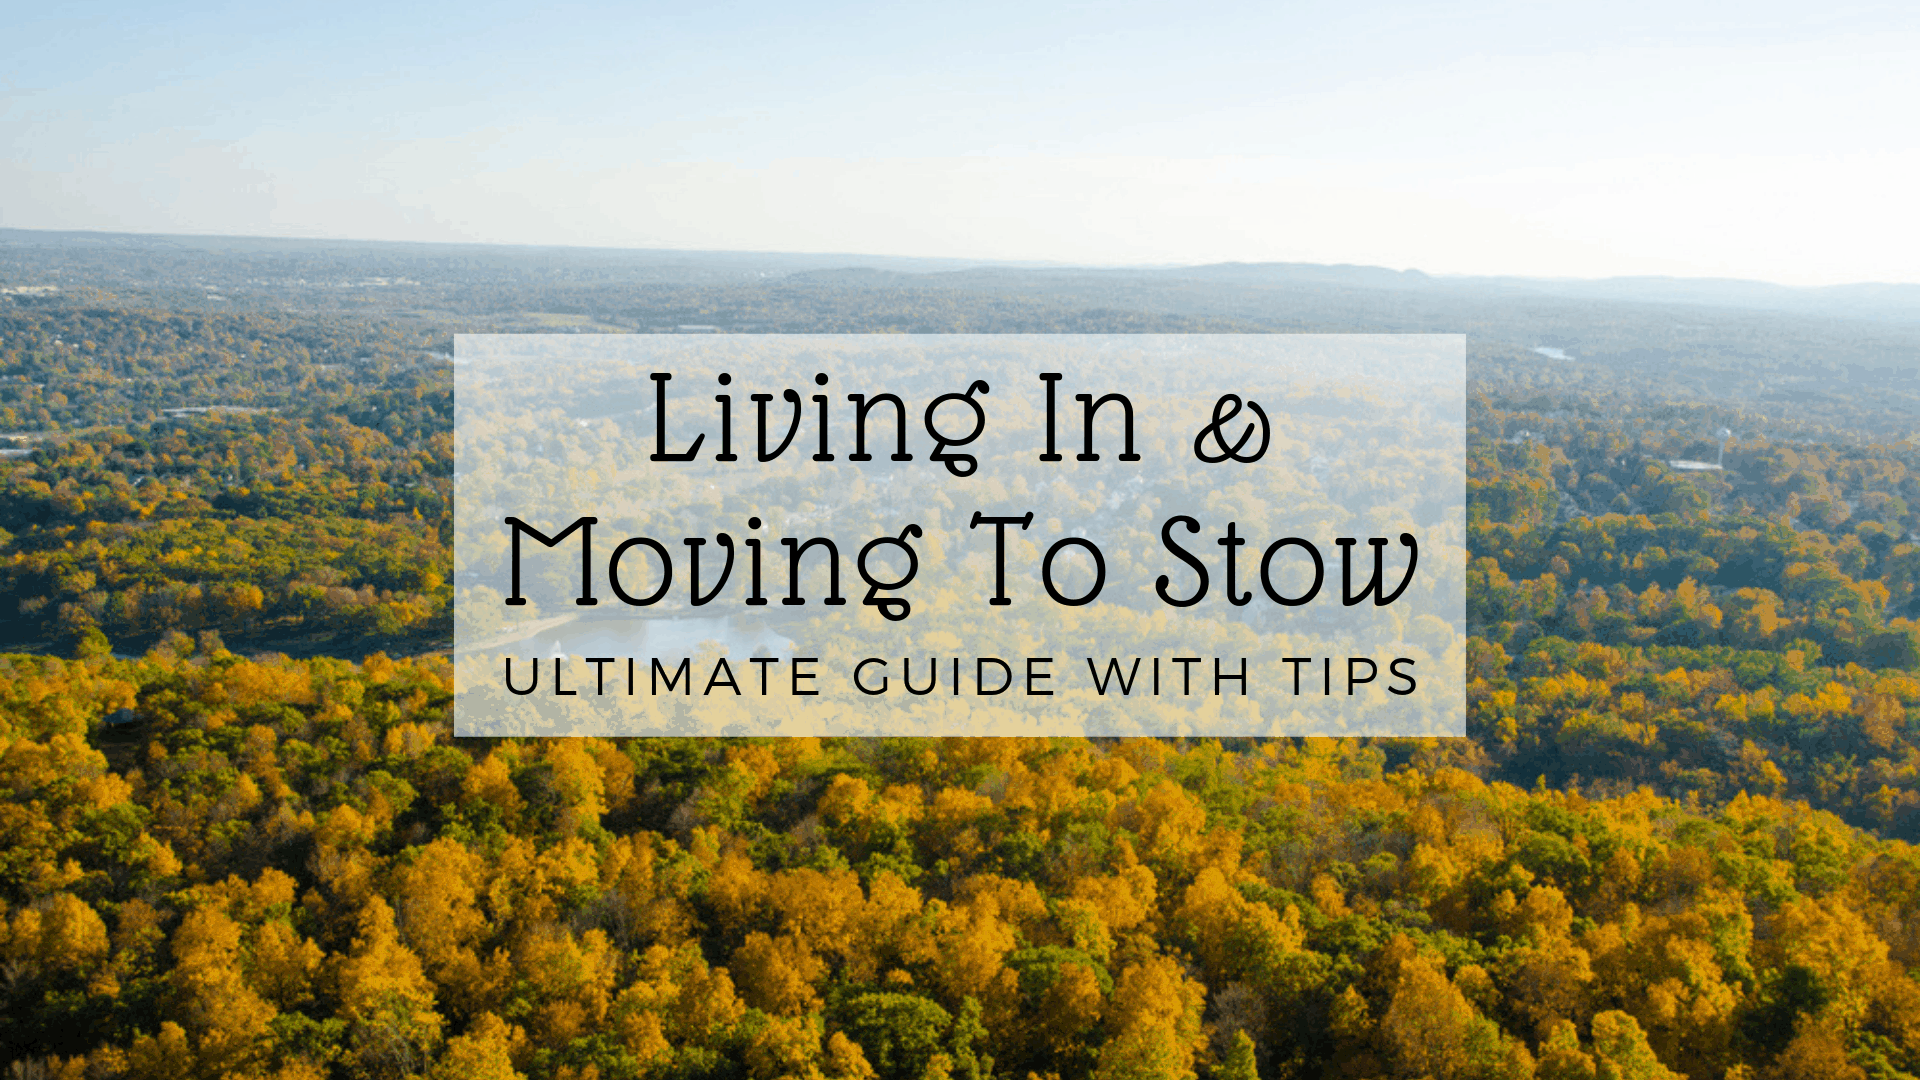 Living In & Moving To Stow - Ultimate Guide With Tips